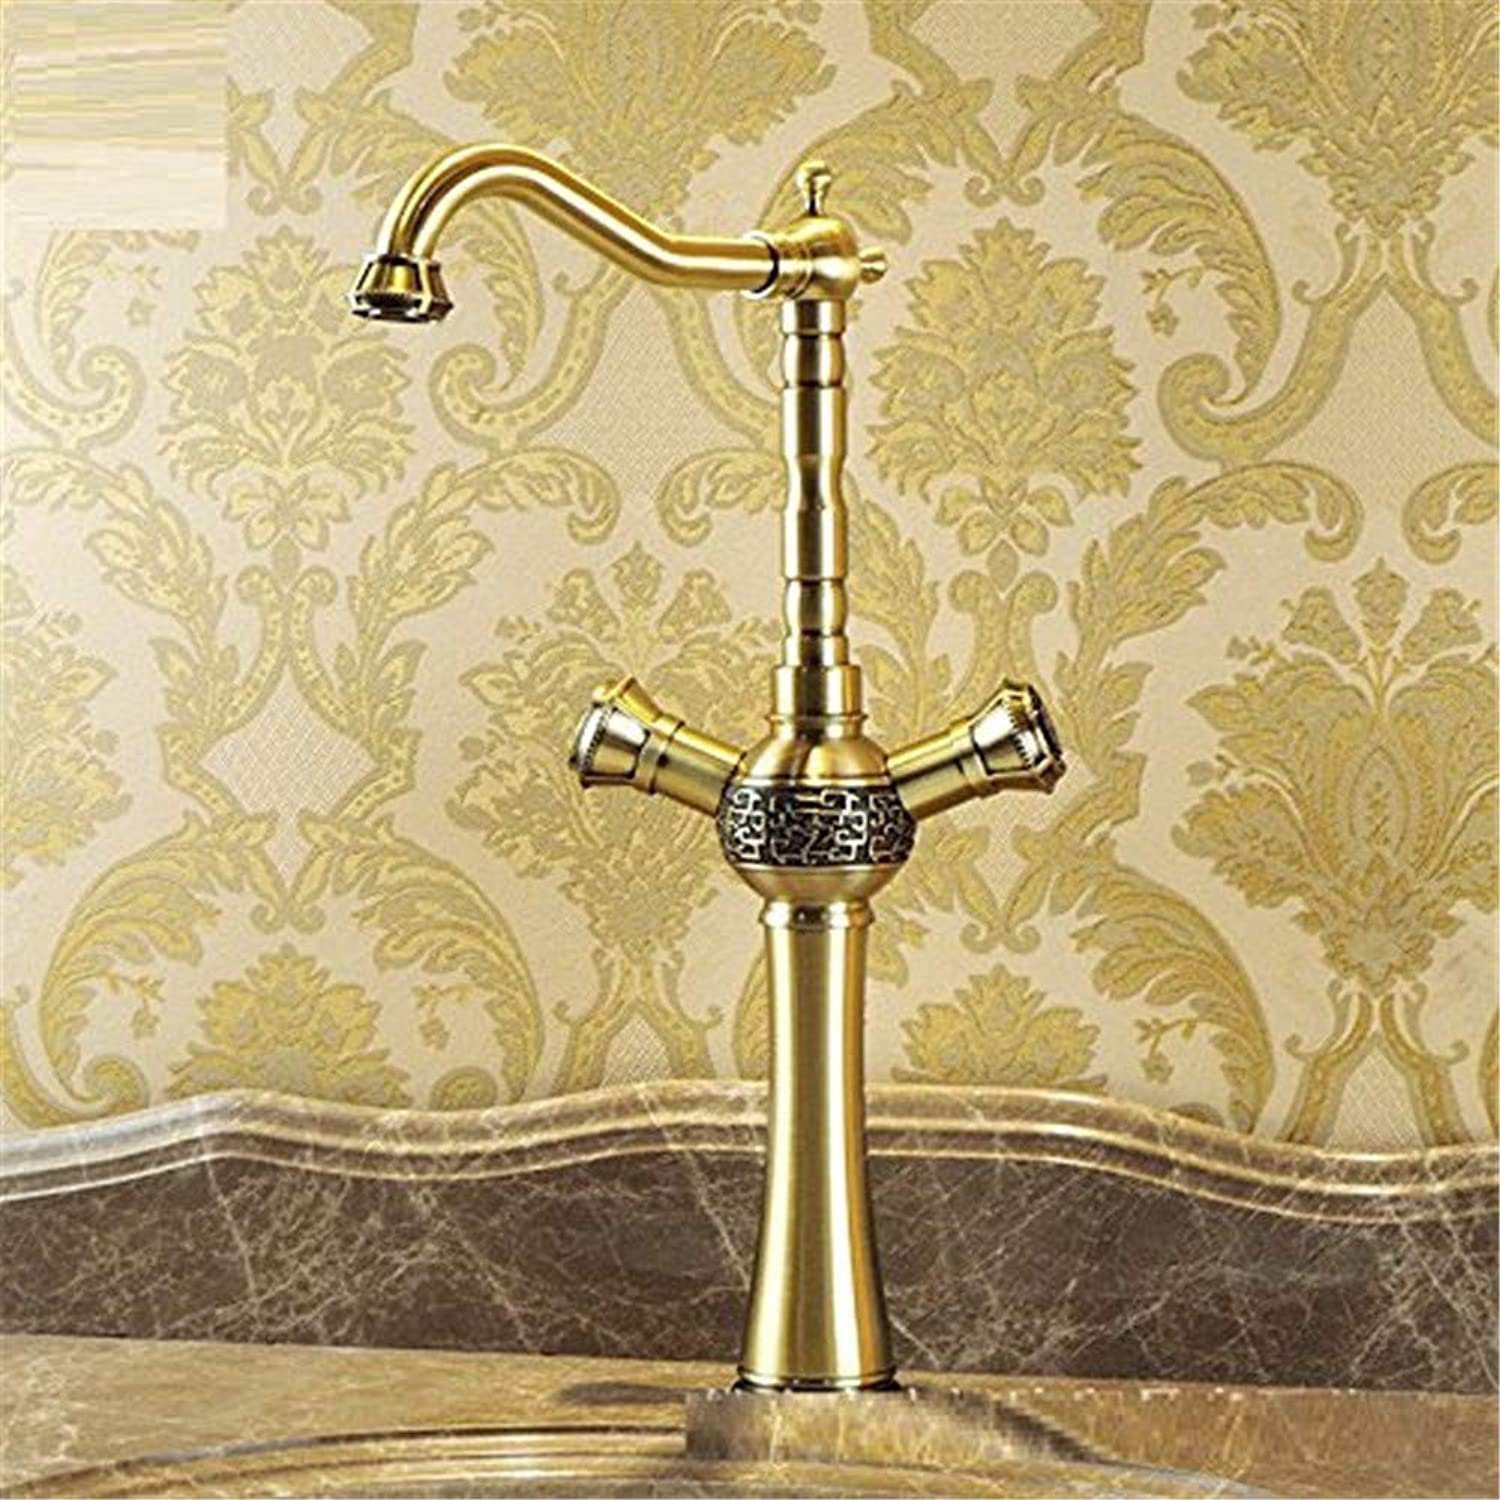 redOOY Taps Basin Double Basin Single Hole Cold Cold Cold And Hot Water Basin Faucet Taps f1ab12